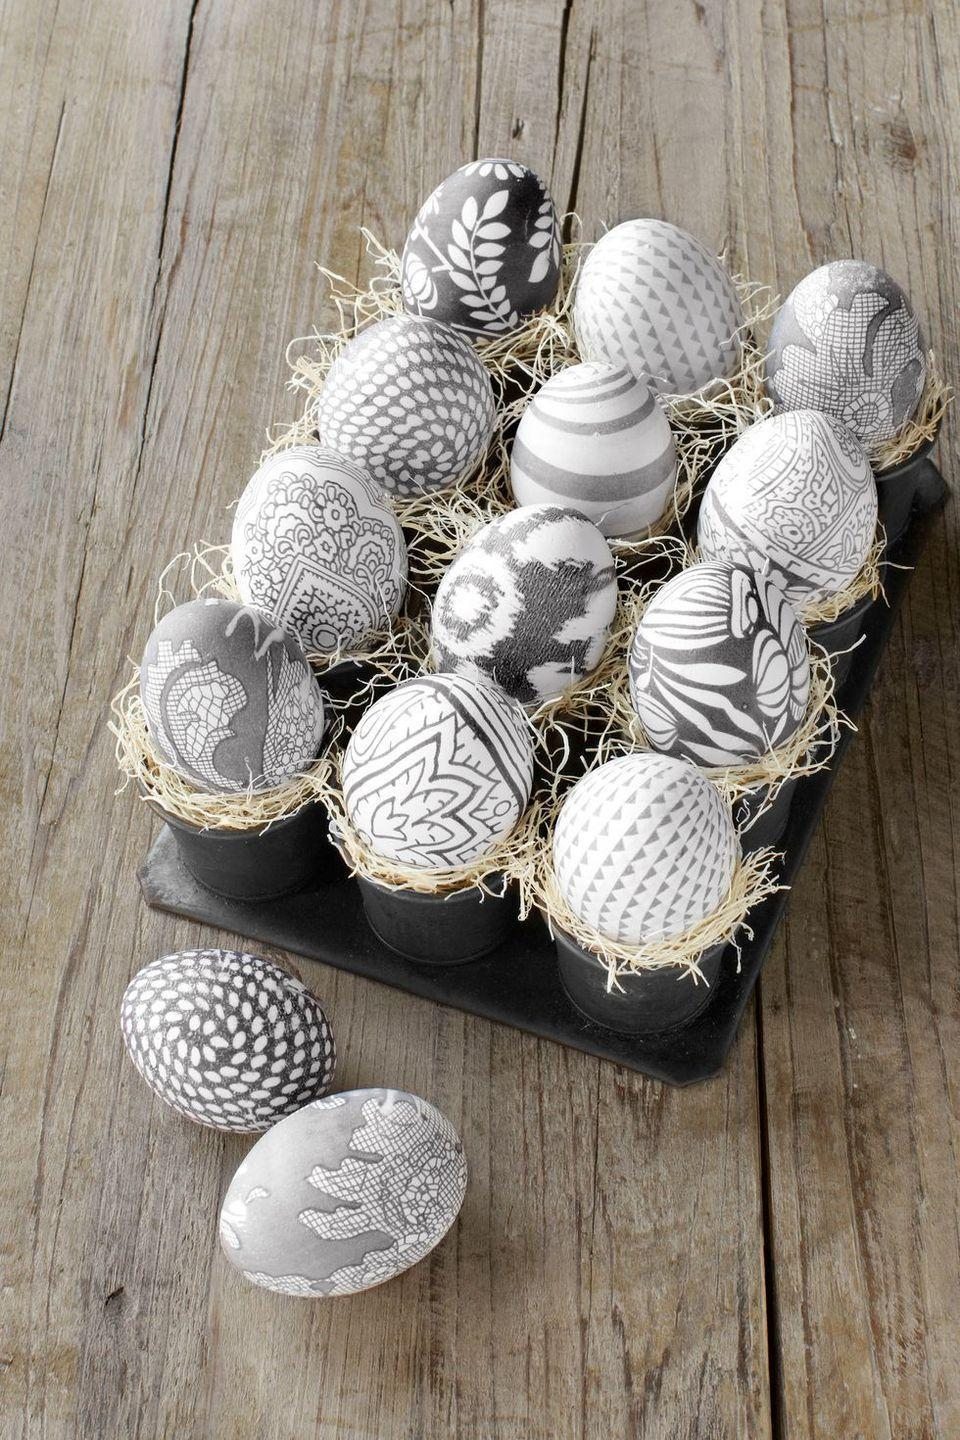 """<p>Use silk fabric to give your Easter eggs a chic, patterned look.</p><p><strong><em>Get the tutorial at <a href=""""https://www.countryliving.com/diy-crafts/how-to/g524/easter-fun-stuff-0406/?slide=14"""" rel=""""nofollow noopener"""" target=""""_blank"""" data-ylk=""""slk:Country Living"""" class=""""link rapid-noclick-resp"""">Country Living</a>.</em></strong></p><p><strong><a class=""""link rapid-noclick-resp"""" href=""""https://www.amazon.com/Heinz-Vinegar-Distilled-White-32/dp/B000RAB7F0/ref=pd_all_pref_n_5?pd_rd_w=2tsOf&pf_rd_p=36d0712f-e8f6-49f0-8101-fe2ba60e1597&pf_rd_r=38WYATF37JCT9CJQ03Y8&pd_rd_r=9b7e1301-8e41-4ecf-ae46-87de28b65ba9&pd_rd_wg=SGTq5&pd_rd_i=B000RAB7F0&psc=1&tag=syn-yahoo-20&ascsubtag=%5Bartid%7C10070.g.1751%5Bsrc%7Cyahoo-us"""" rel=""""nofollow noopener"""" target=""""_blank"""" data-ylk=""""slk:SHOP WHITE VINEGAR"""">SHOP WHITE VINEGAR</a></strong></p>"""